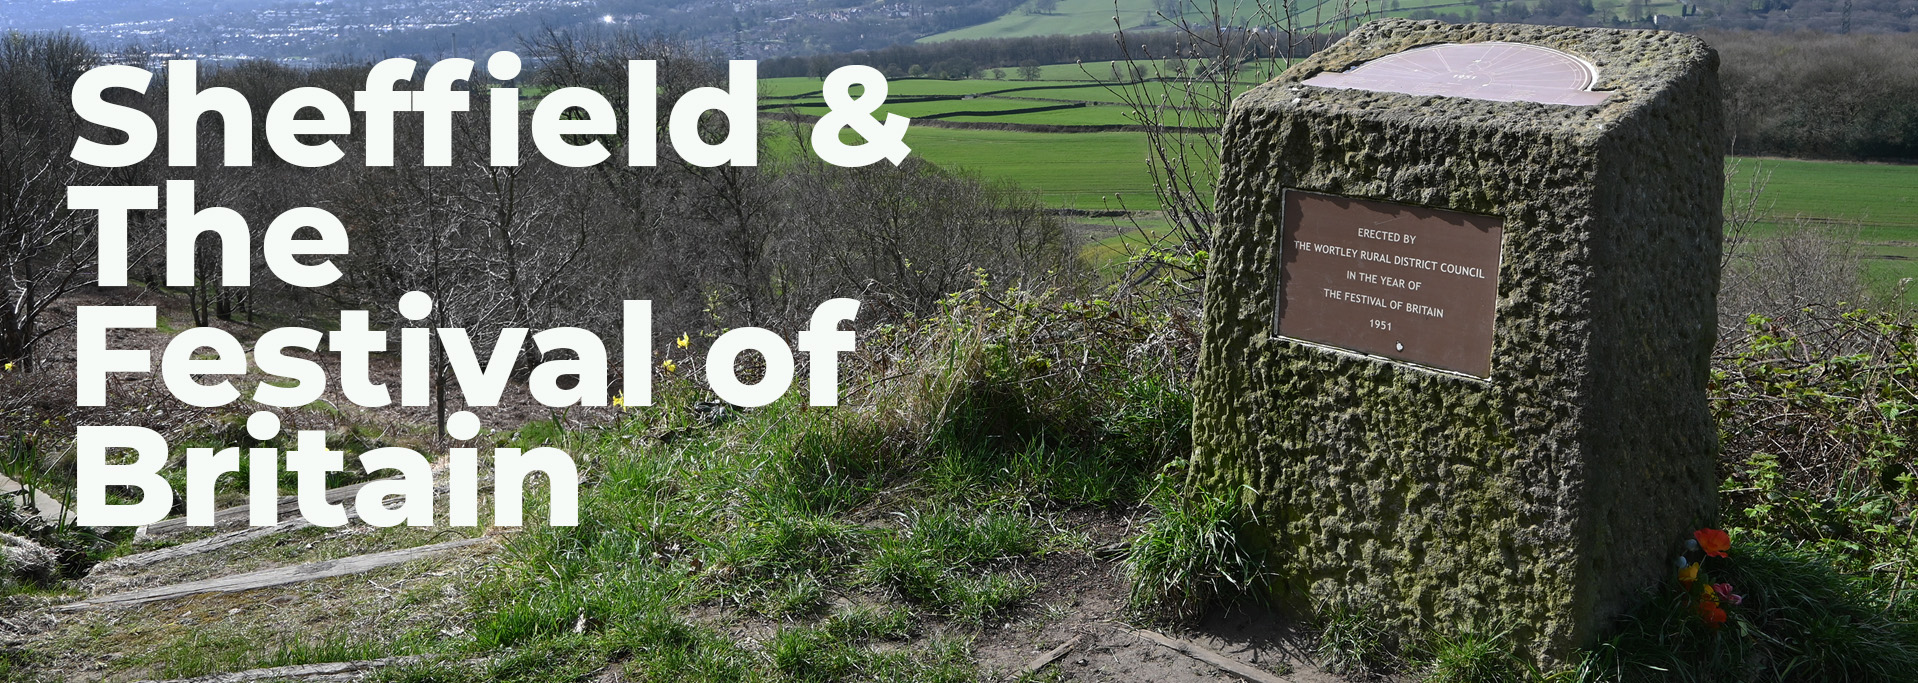 Banner image for the Festival of Britain and Sheffield page. Photograph of the Festival Stone.